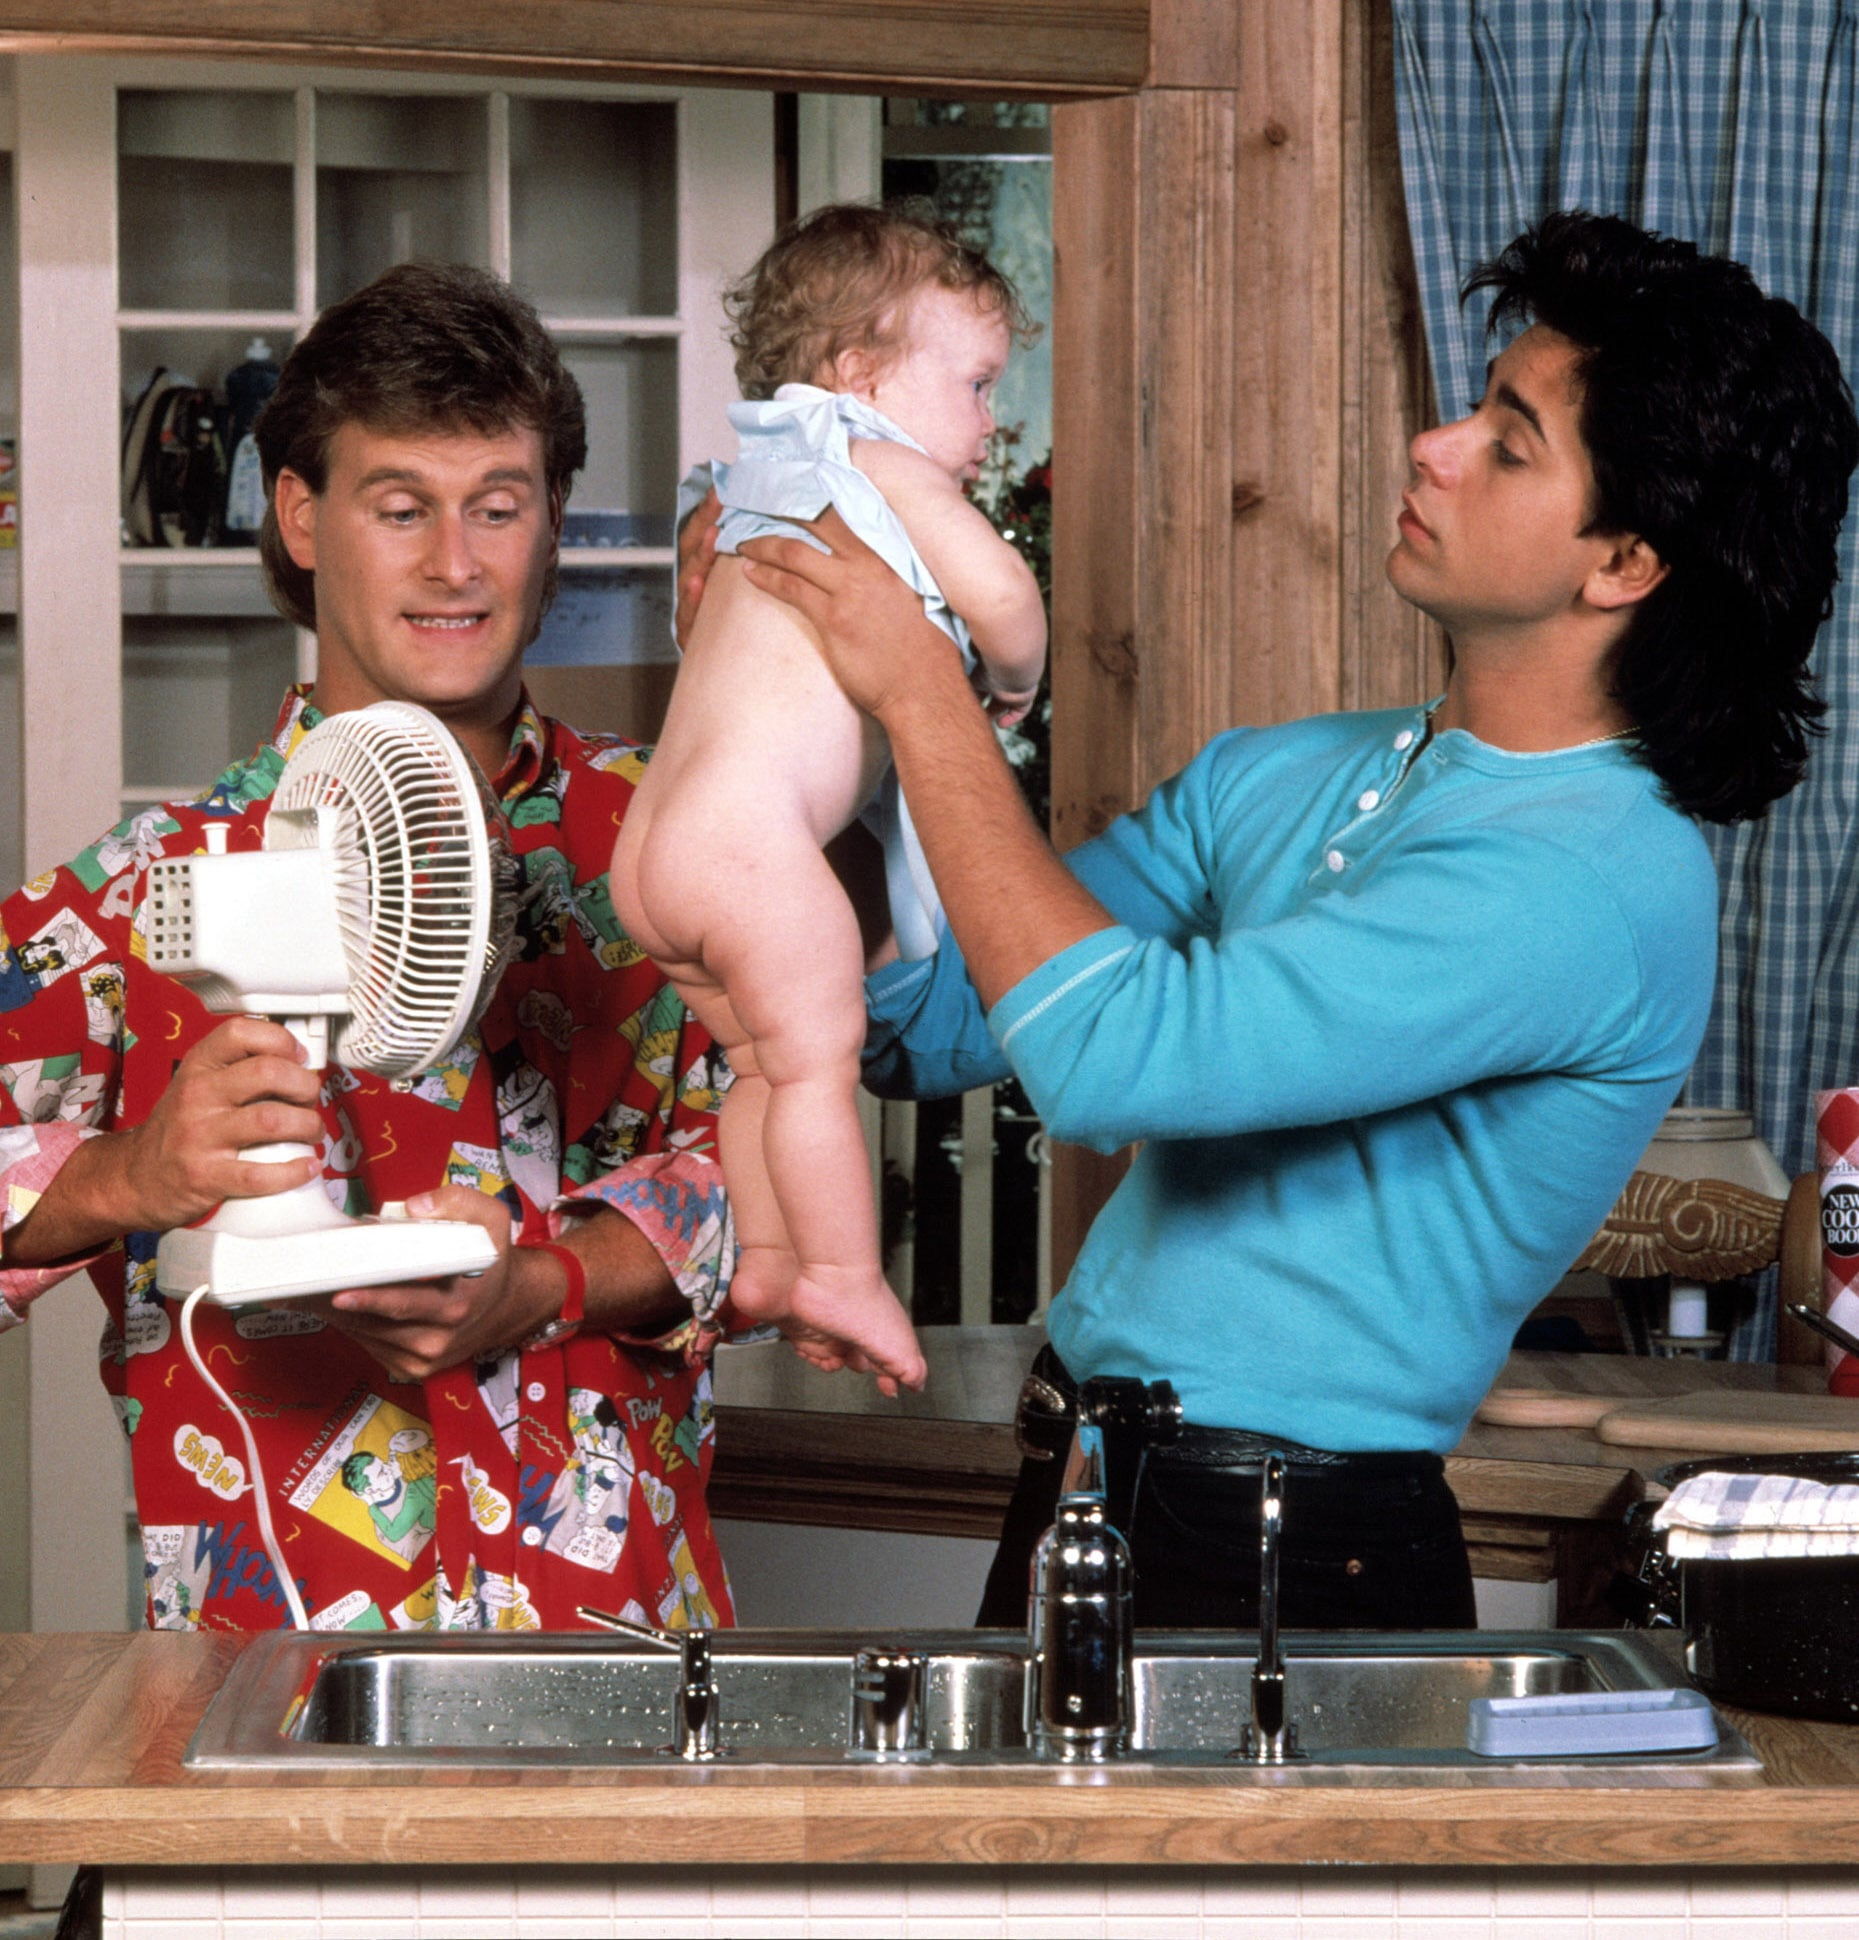 FULL HOUSE, Dave Coulier, Mary Kate/Ashley Olsen, John Stamos, 1987-95, (c)Warner Bros. Television/courtesy Everett Collection